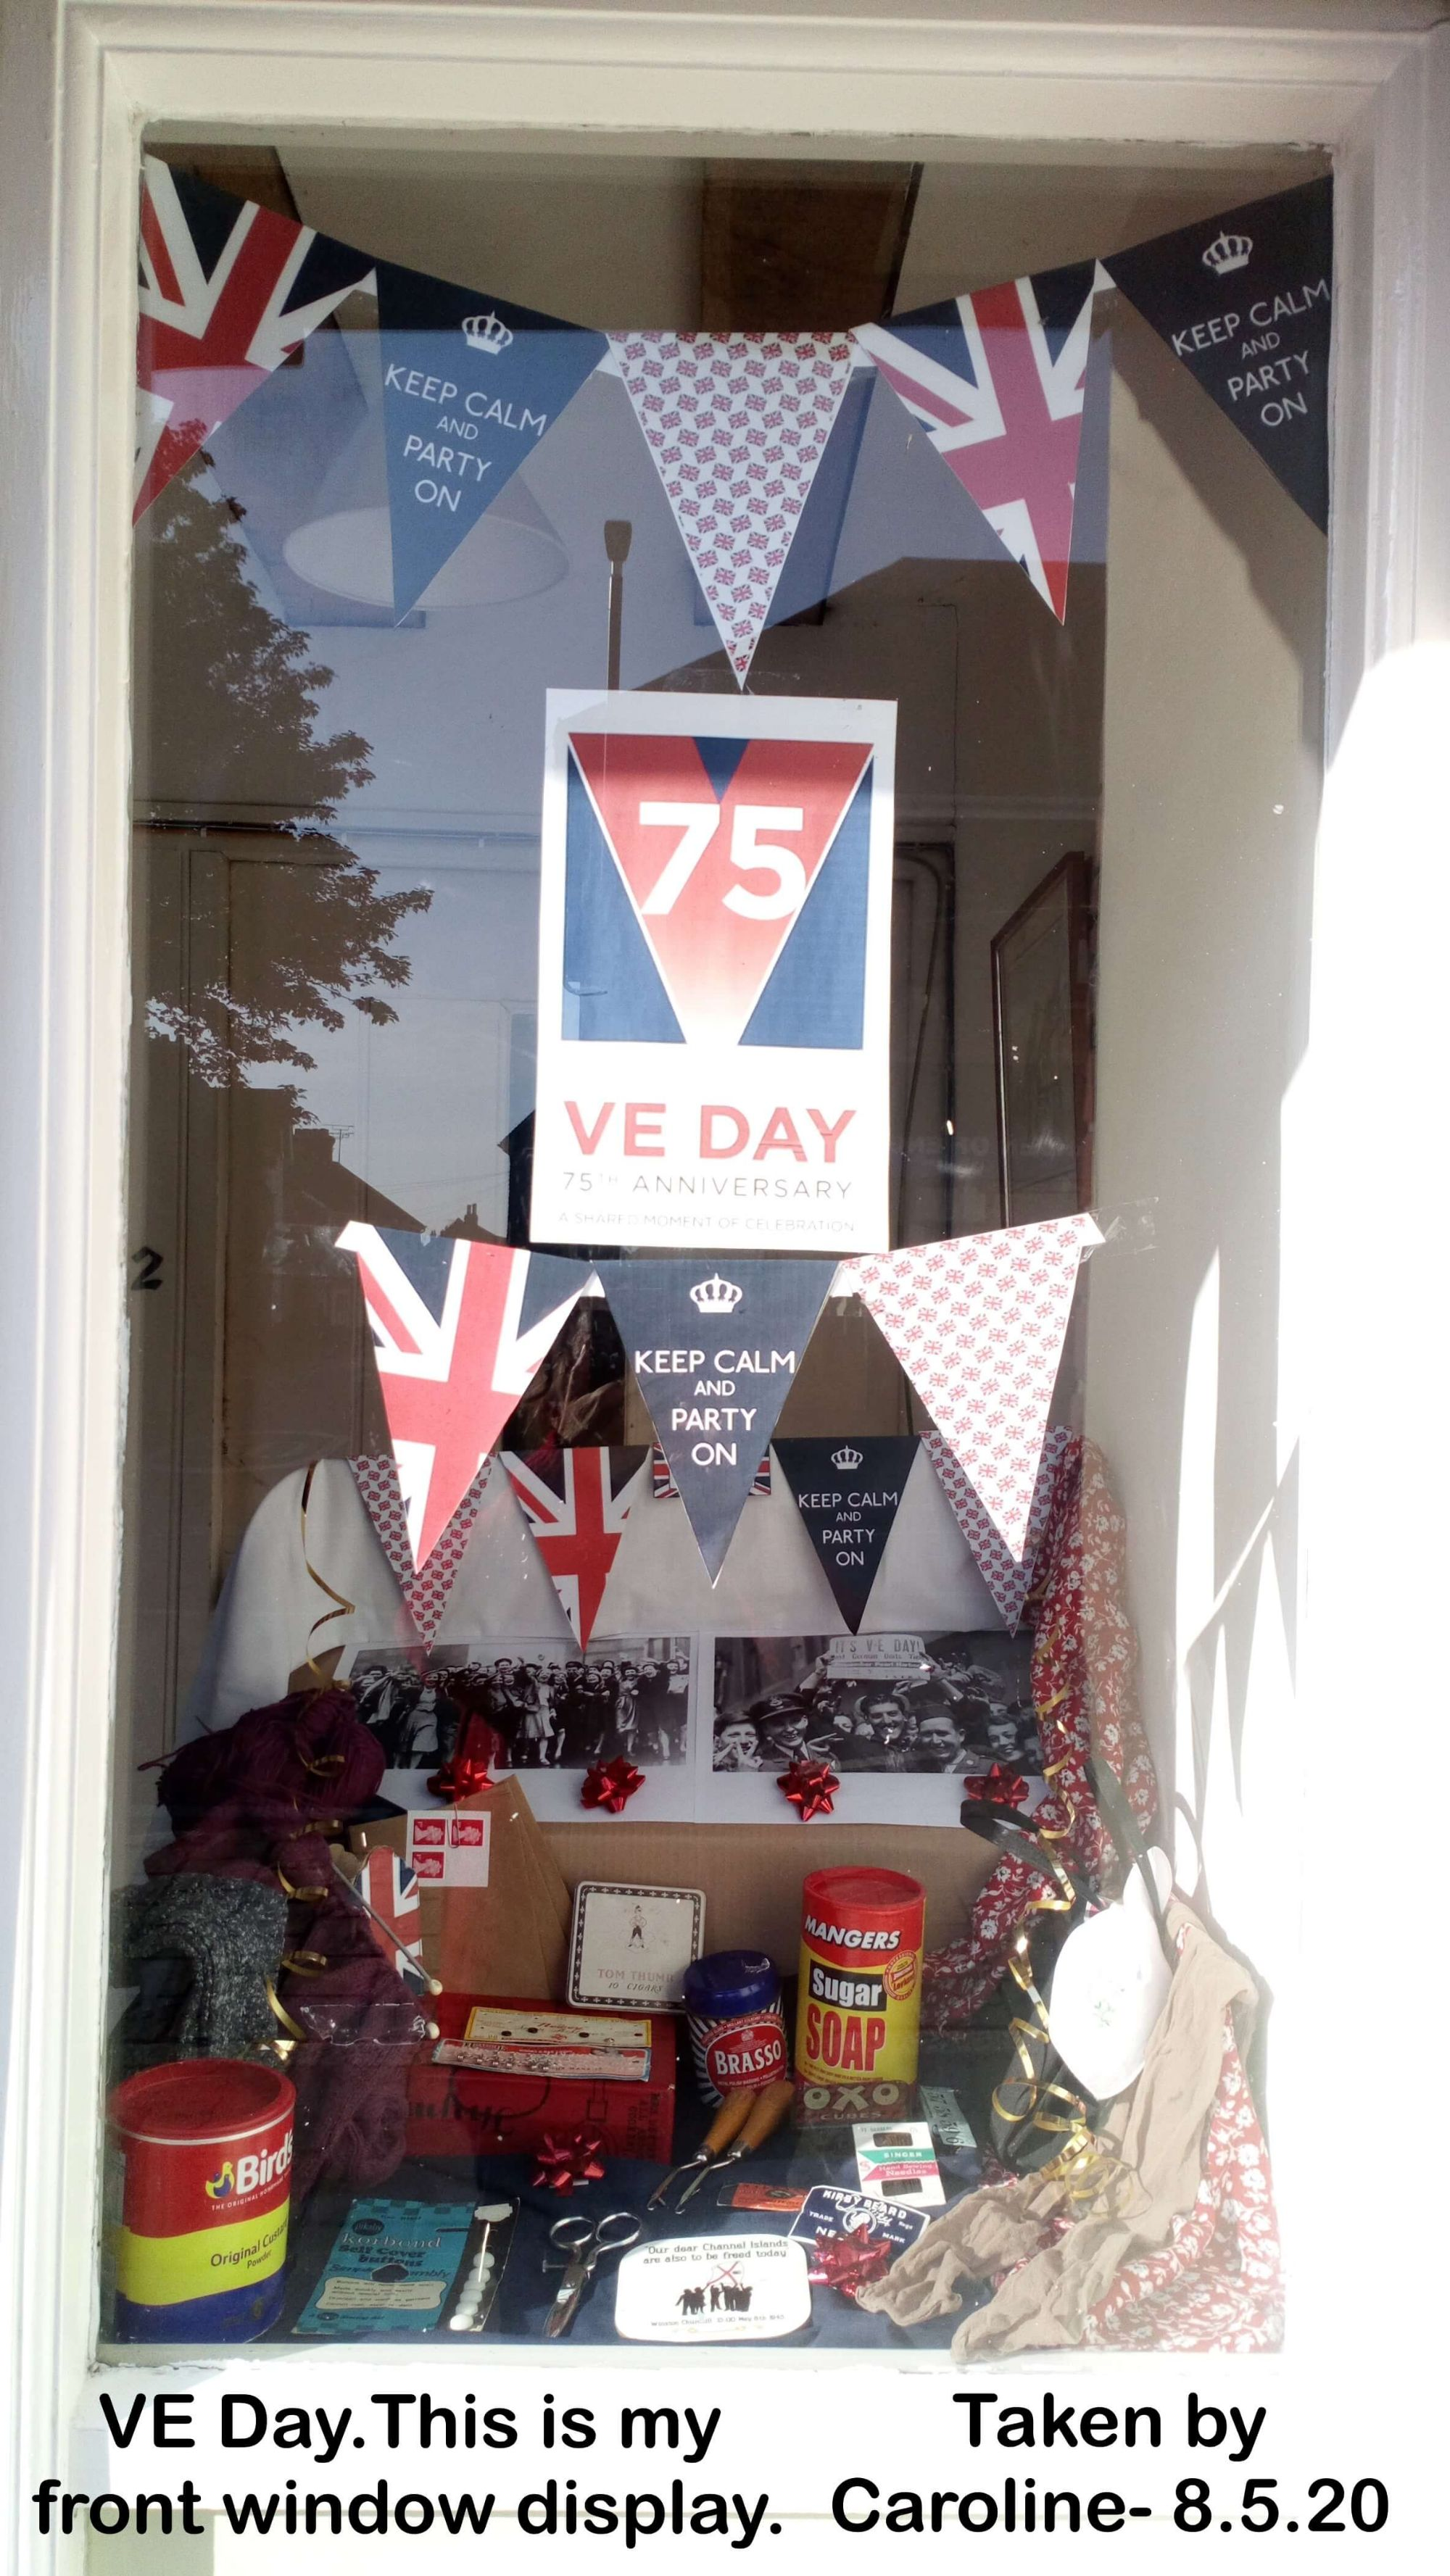 VE Day.This is my front window display.